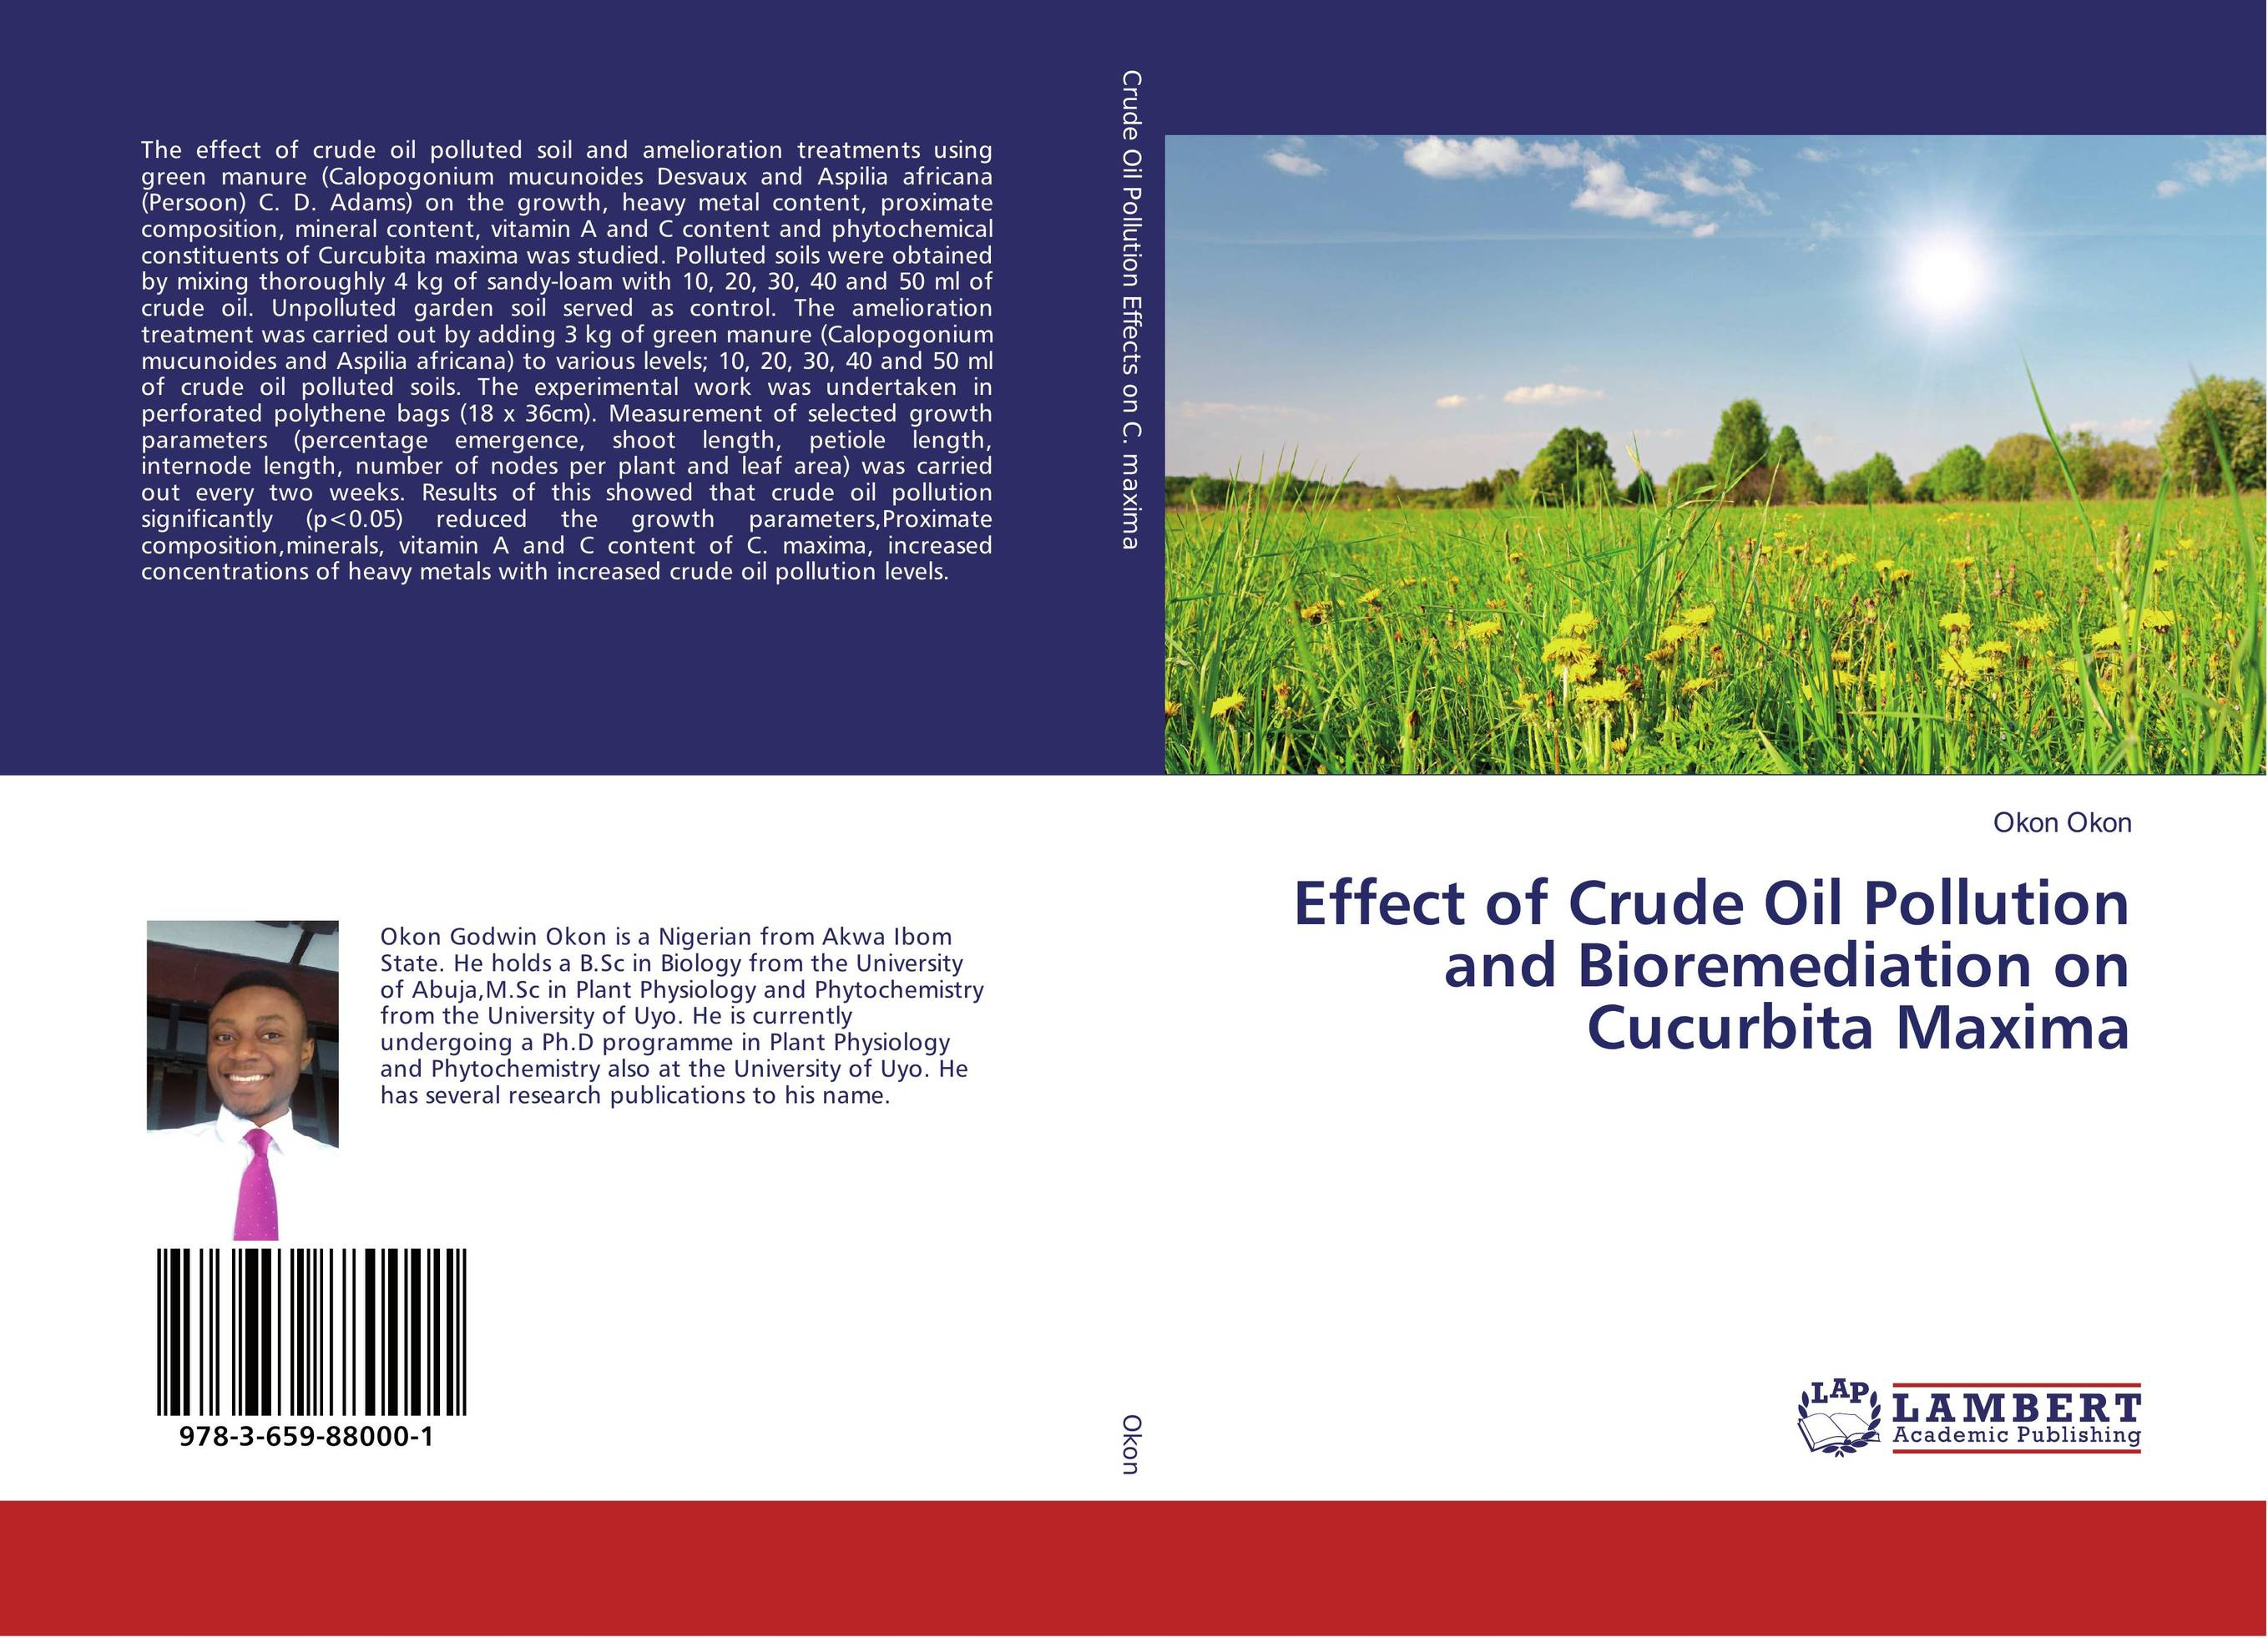 Effect of Crude Oil Pollution and Bioremediation on Cucurbita Maxima marwan a ibrahim effect of heavy metals on haematological and testicular functions